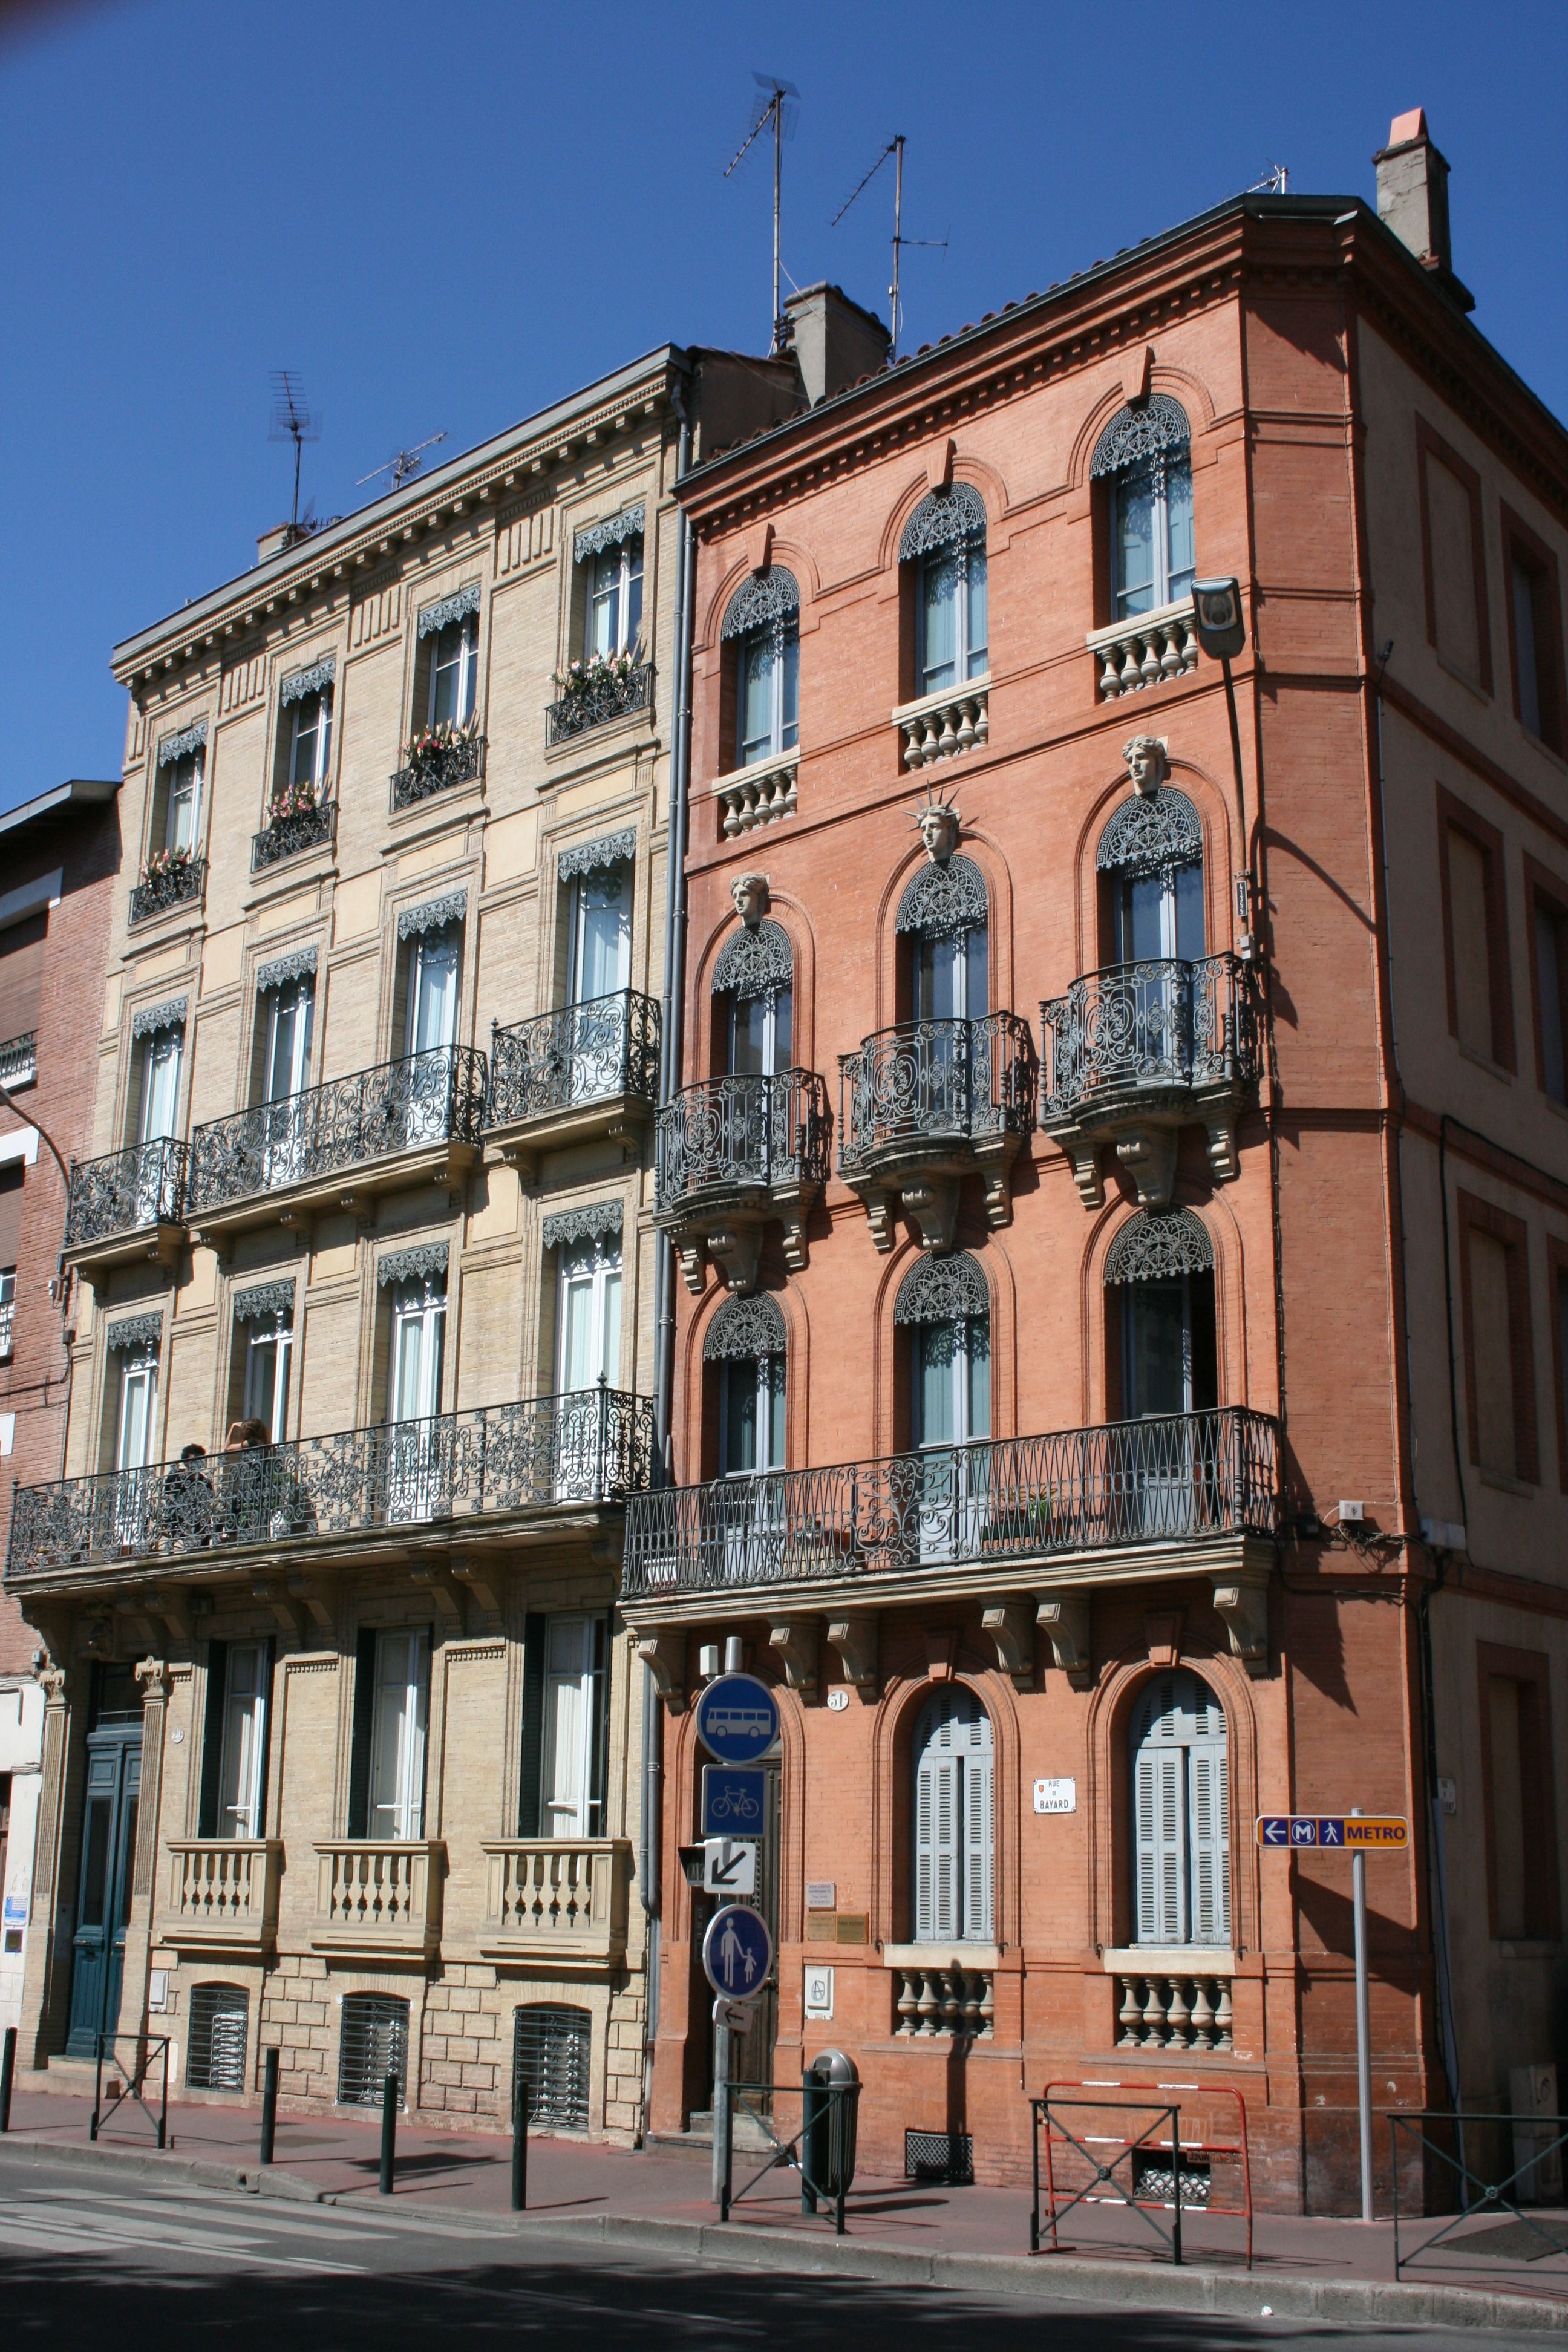 FileBuildings in Toulouse France 2jpg  Wikimedia Commons